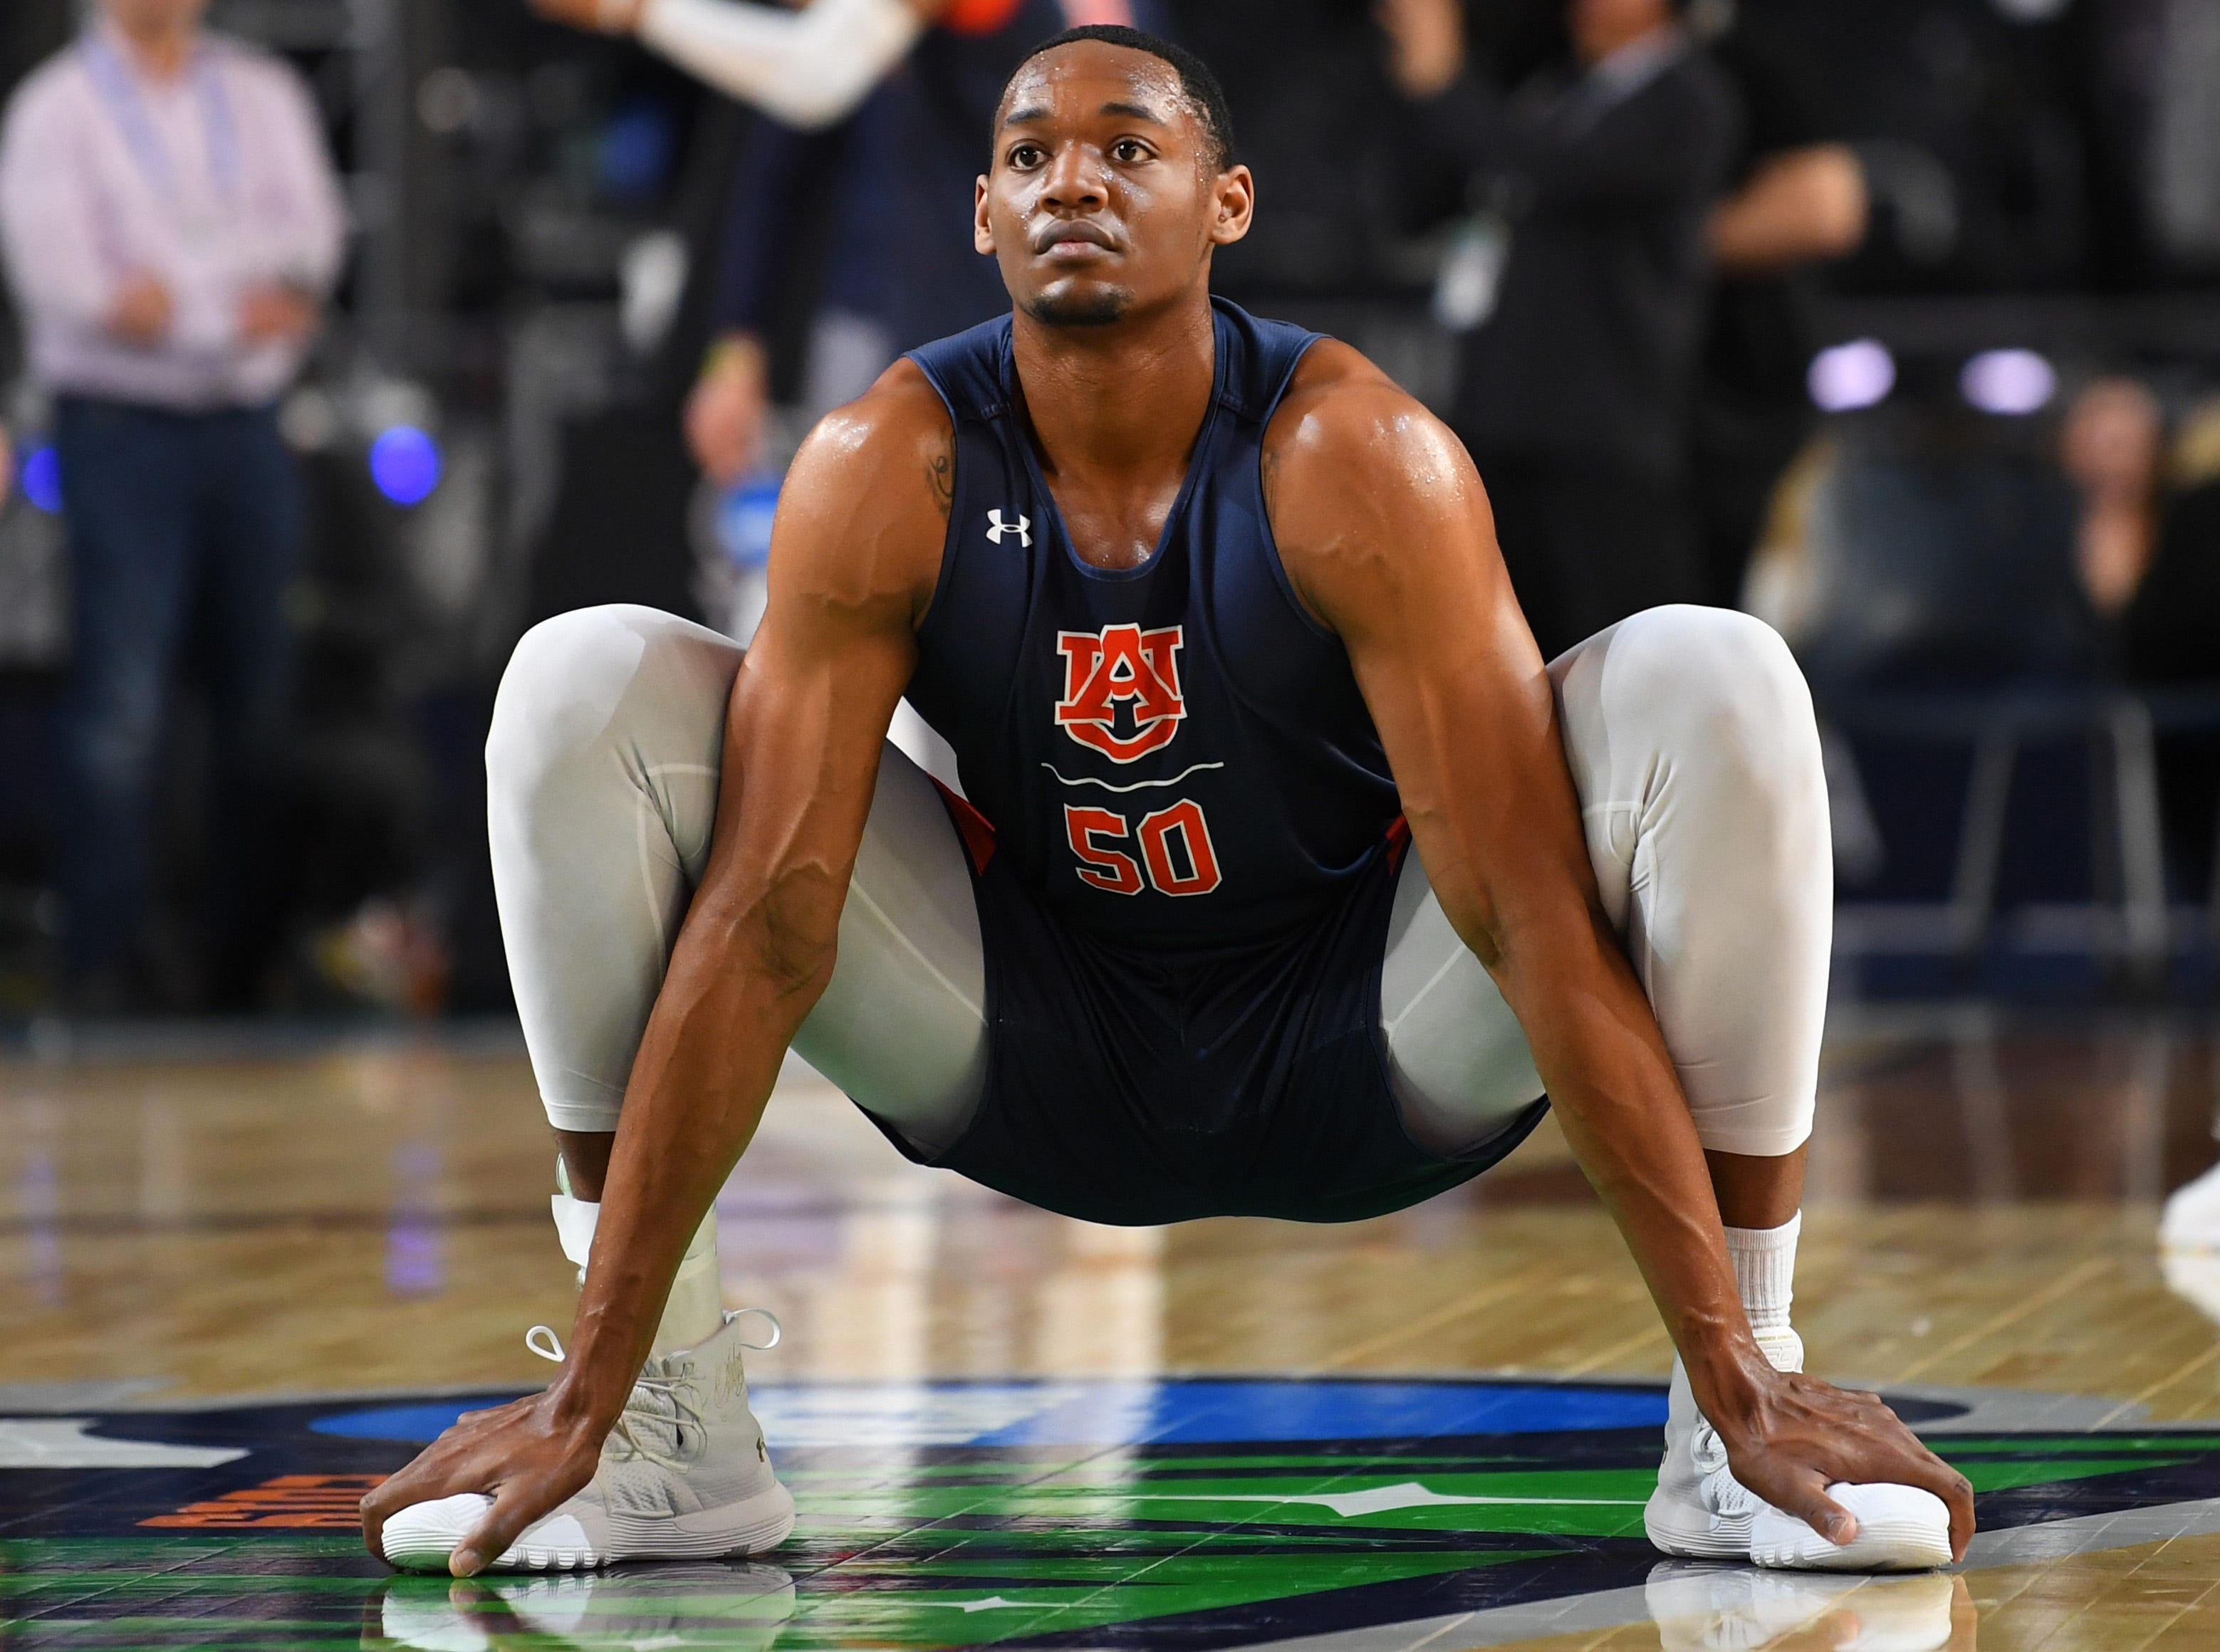 Apr 5, 2019; Minneapolis, MN, USA; Auburn Tigers center Austin Wiley (50) stretches during practice for the 2019 men's Final Four at US Bank Stadium. Mandatory Credit: Bob Donnan-USA TODAY Sports